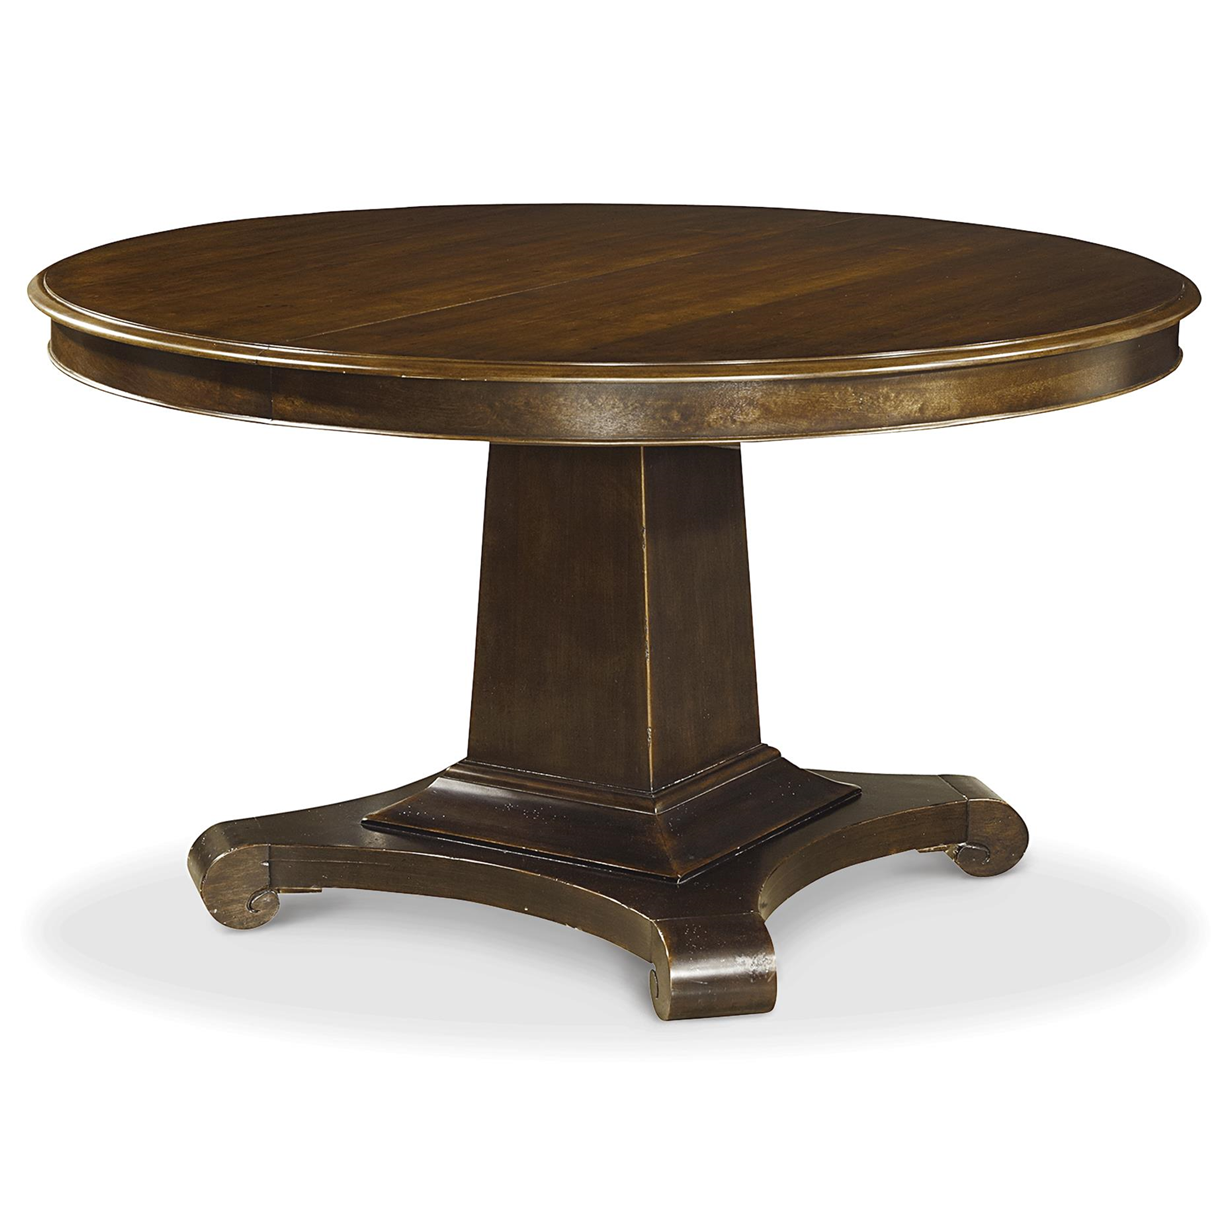 Vintage Extendable Dining Table Sonoma Vintage Heirloom Round Extending Dining Table Zin Home